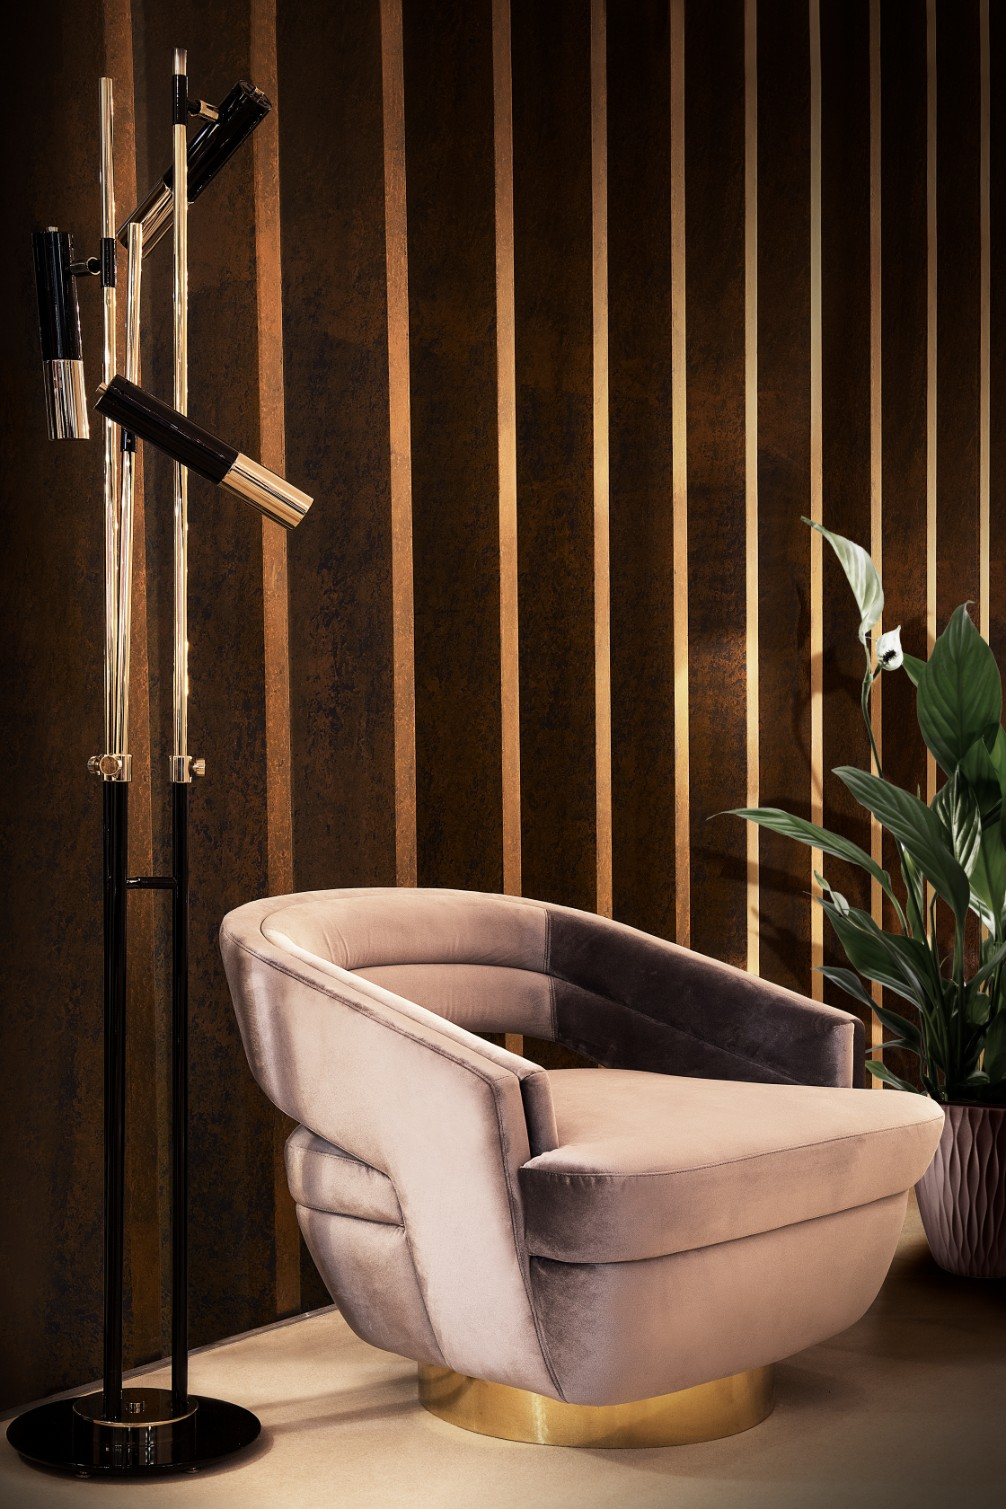 Let's Meet DelightFULL's Most Exclusive and Bespoke Mid-Century Lamps 7 mid-century lamps Let's Meet DelightFULL's Most Exclusive and Bespoke Mid-Century Lamps Lets Meet DelightFULLs Most Exclusive and Bespoke Mid Century Lamps 7